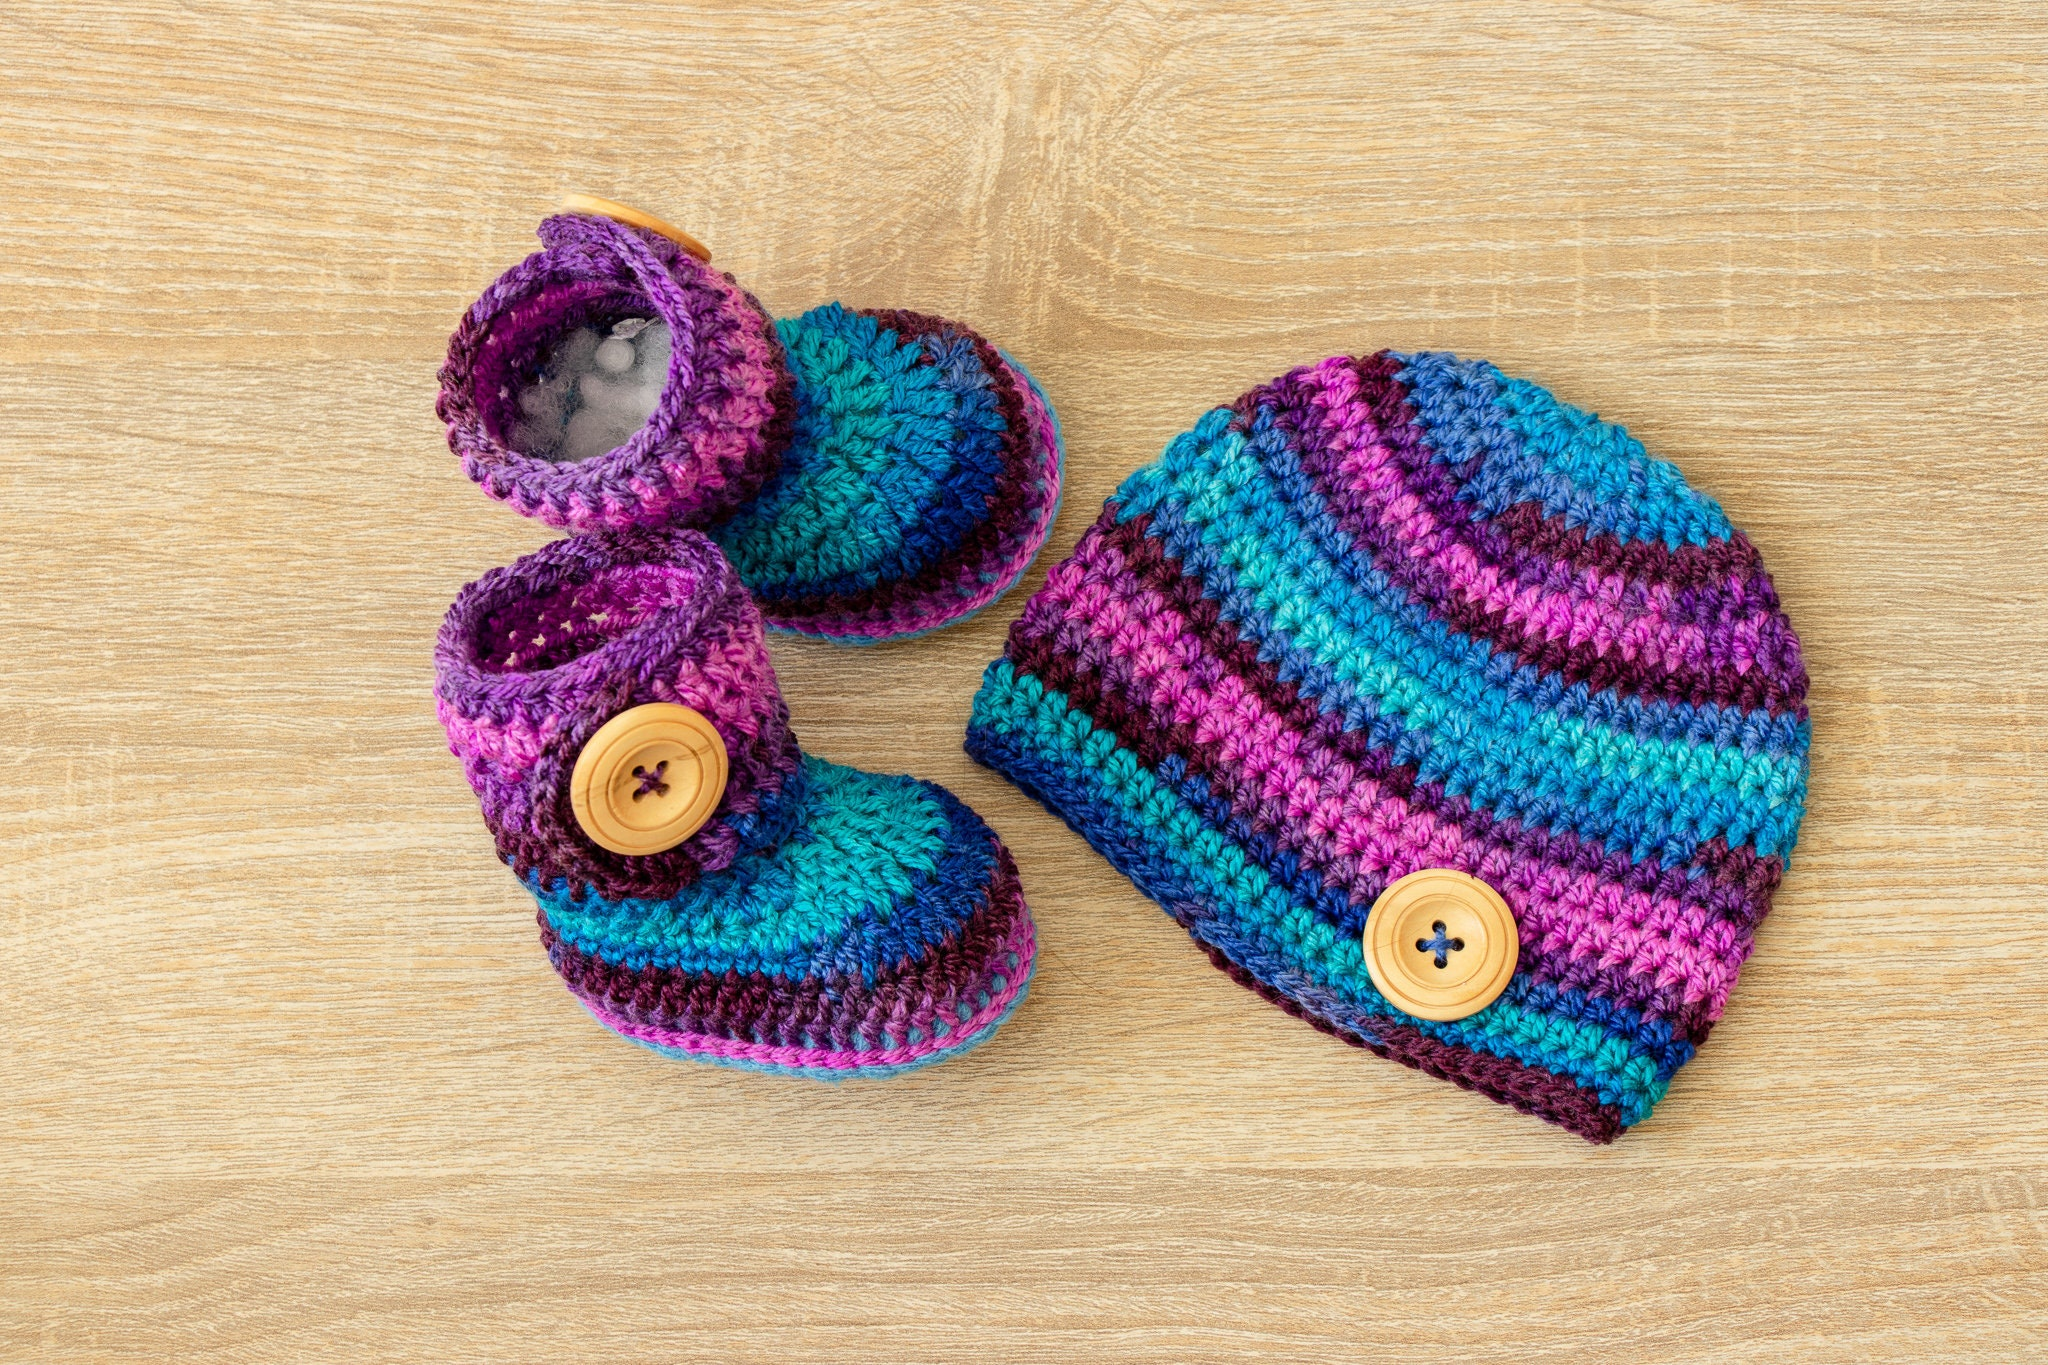 d4b12232d2e Baby boy Hat and booties set - Newborn hat and booties - Crochet ...